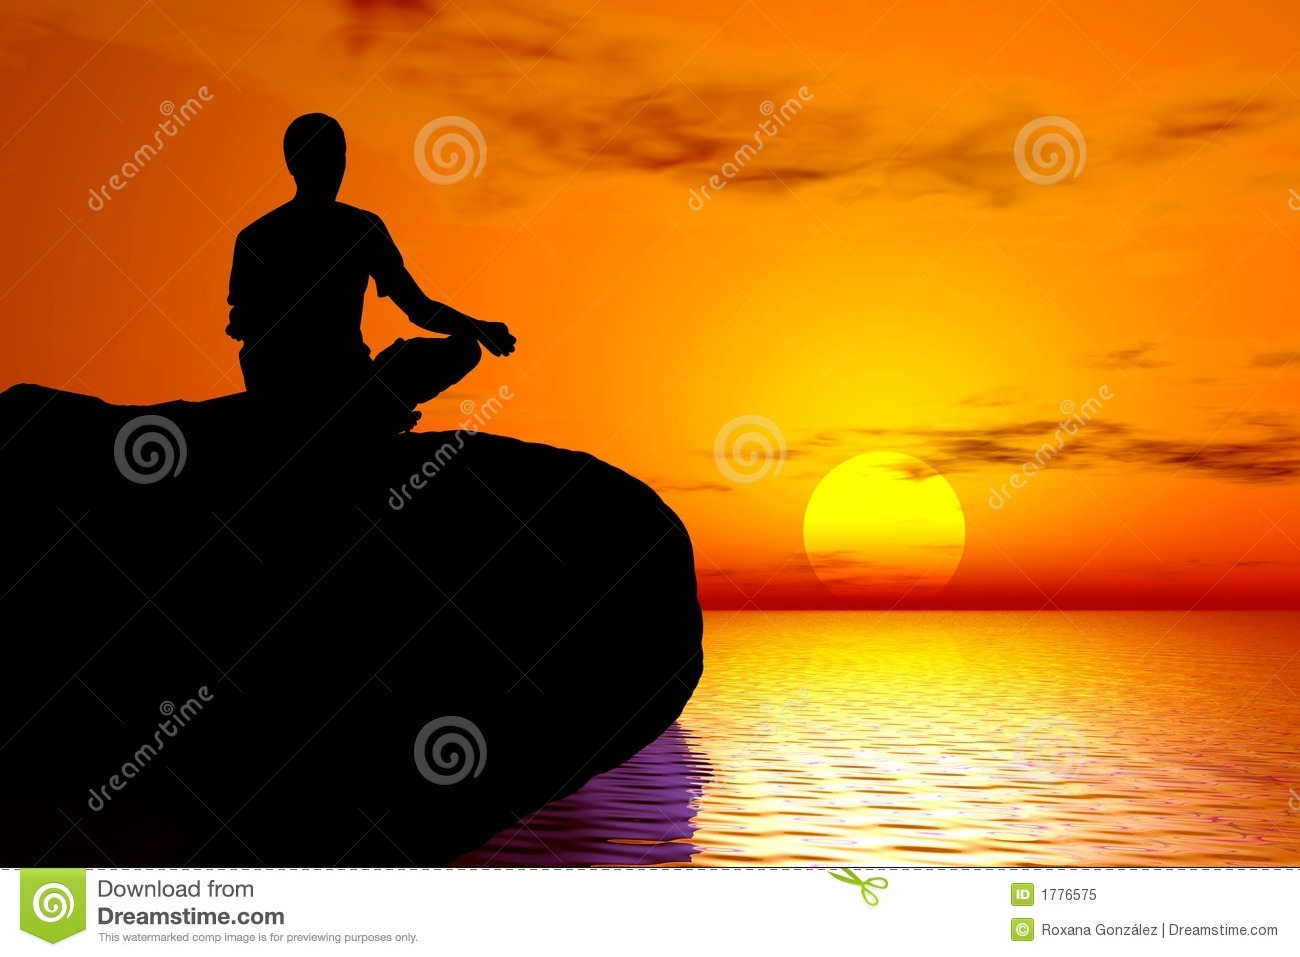 Royalty Free Images Download Yoga Sunset meditation